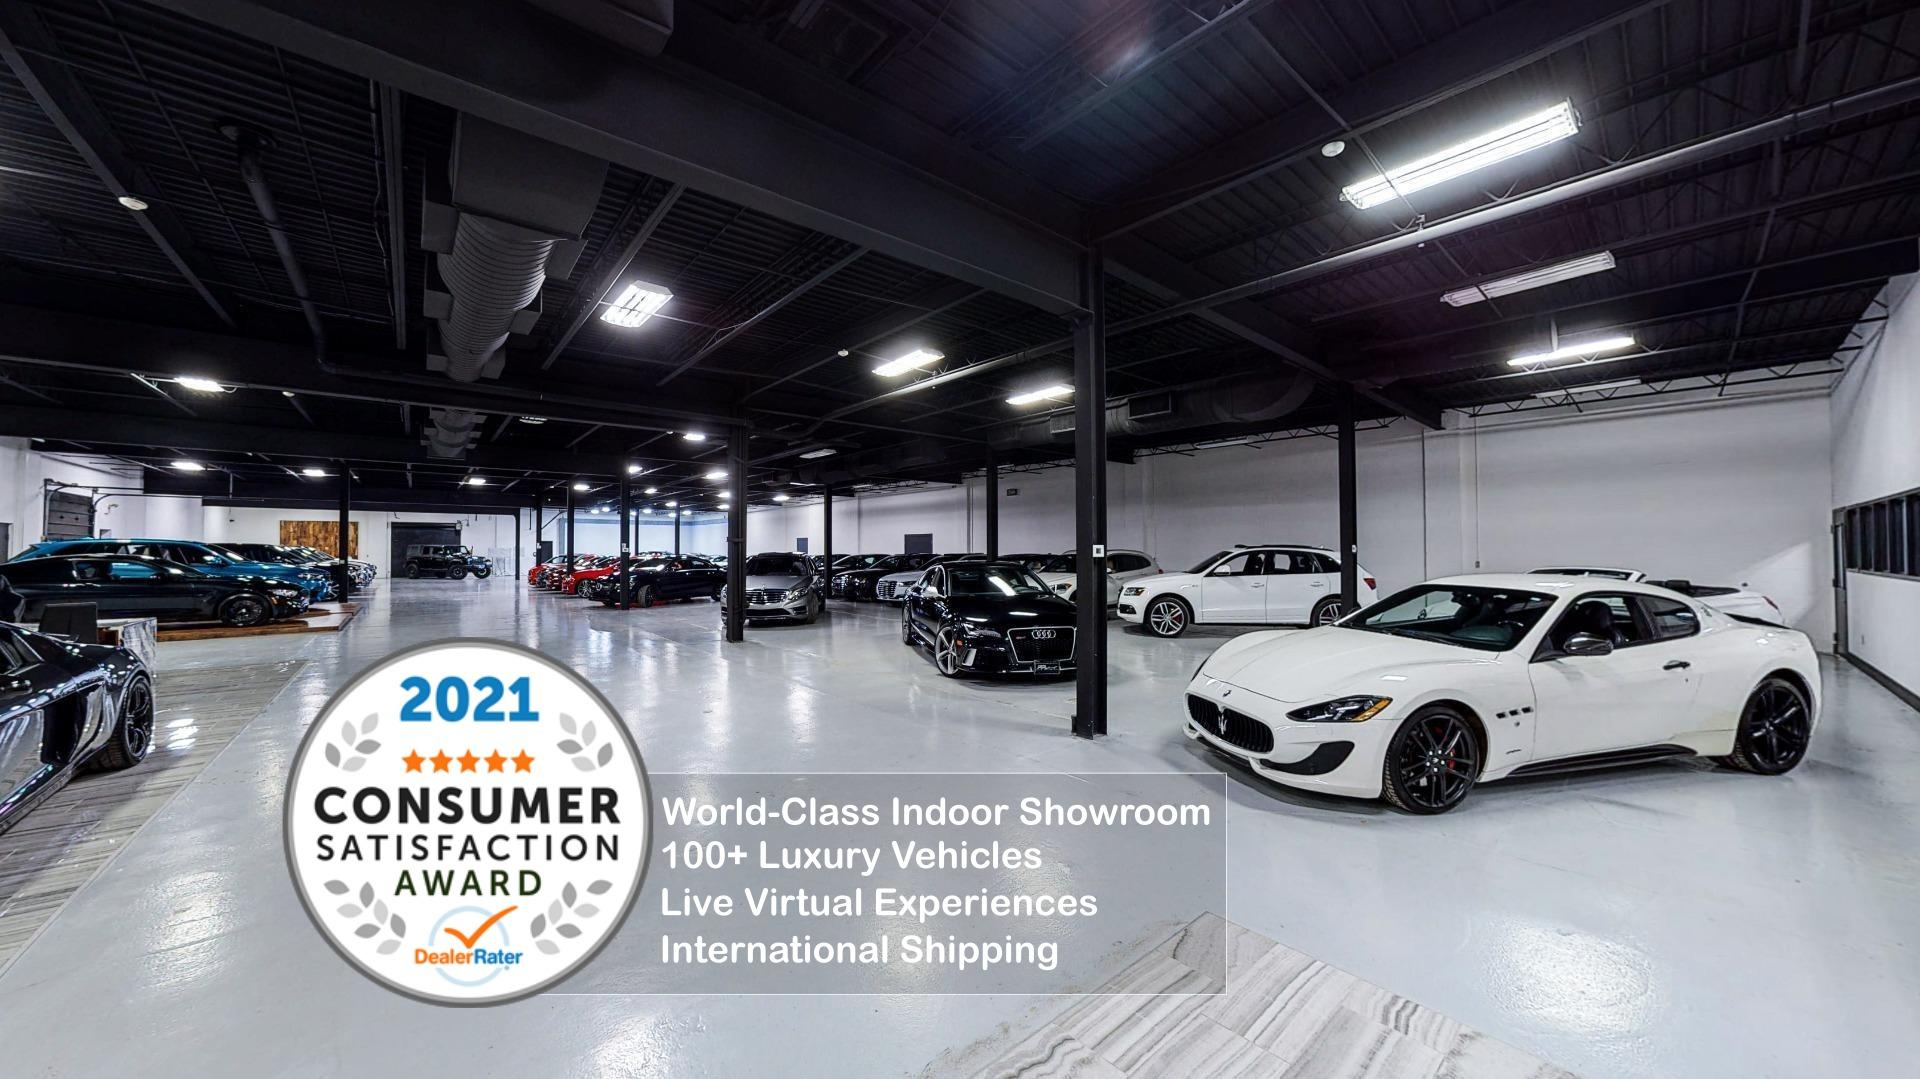 Used 2015 Chevrolet Camaro LT for sale $18,993 at Perfect Auto Collection in Akron OH 44310 3